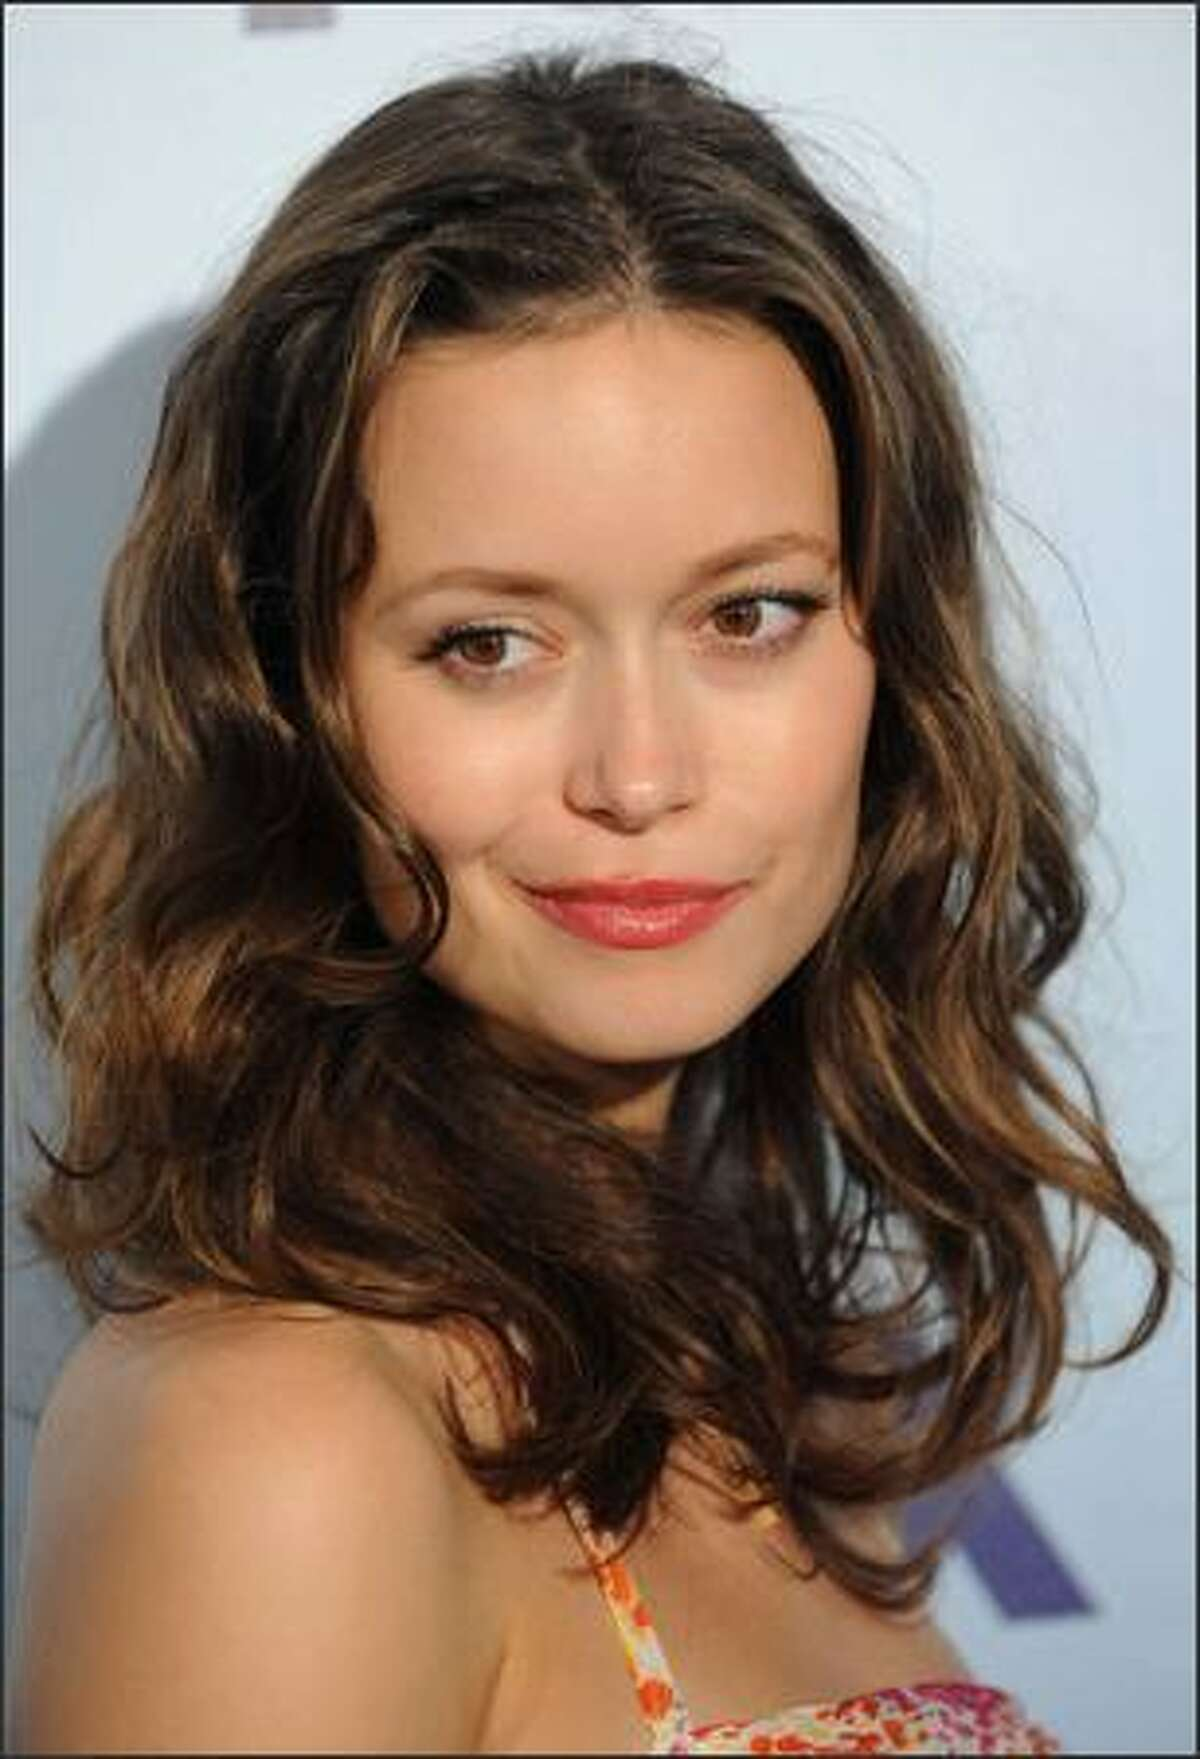 Actress Summer Glau attends the 2008 FOX Upfront at Wollman Rink in Central Park on Thursday in New York City.